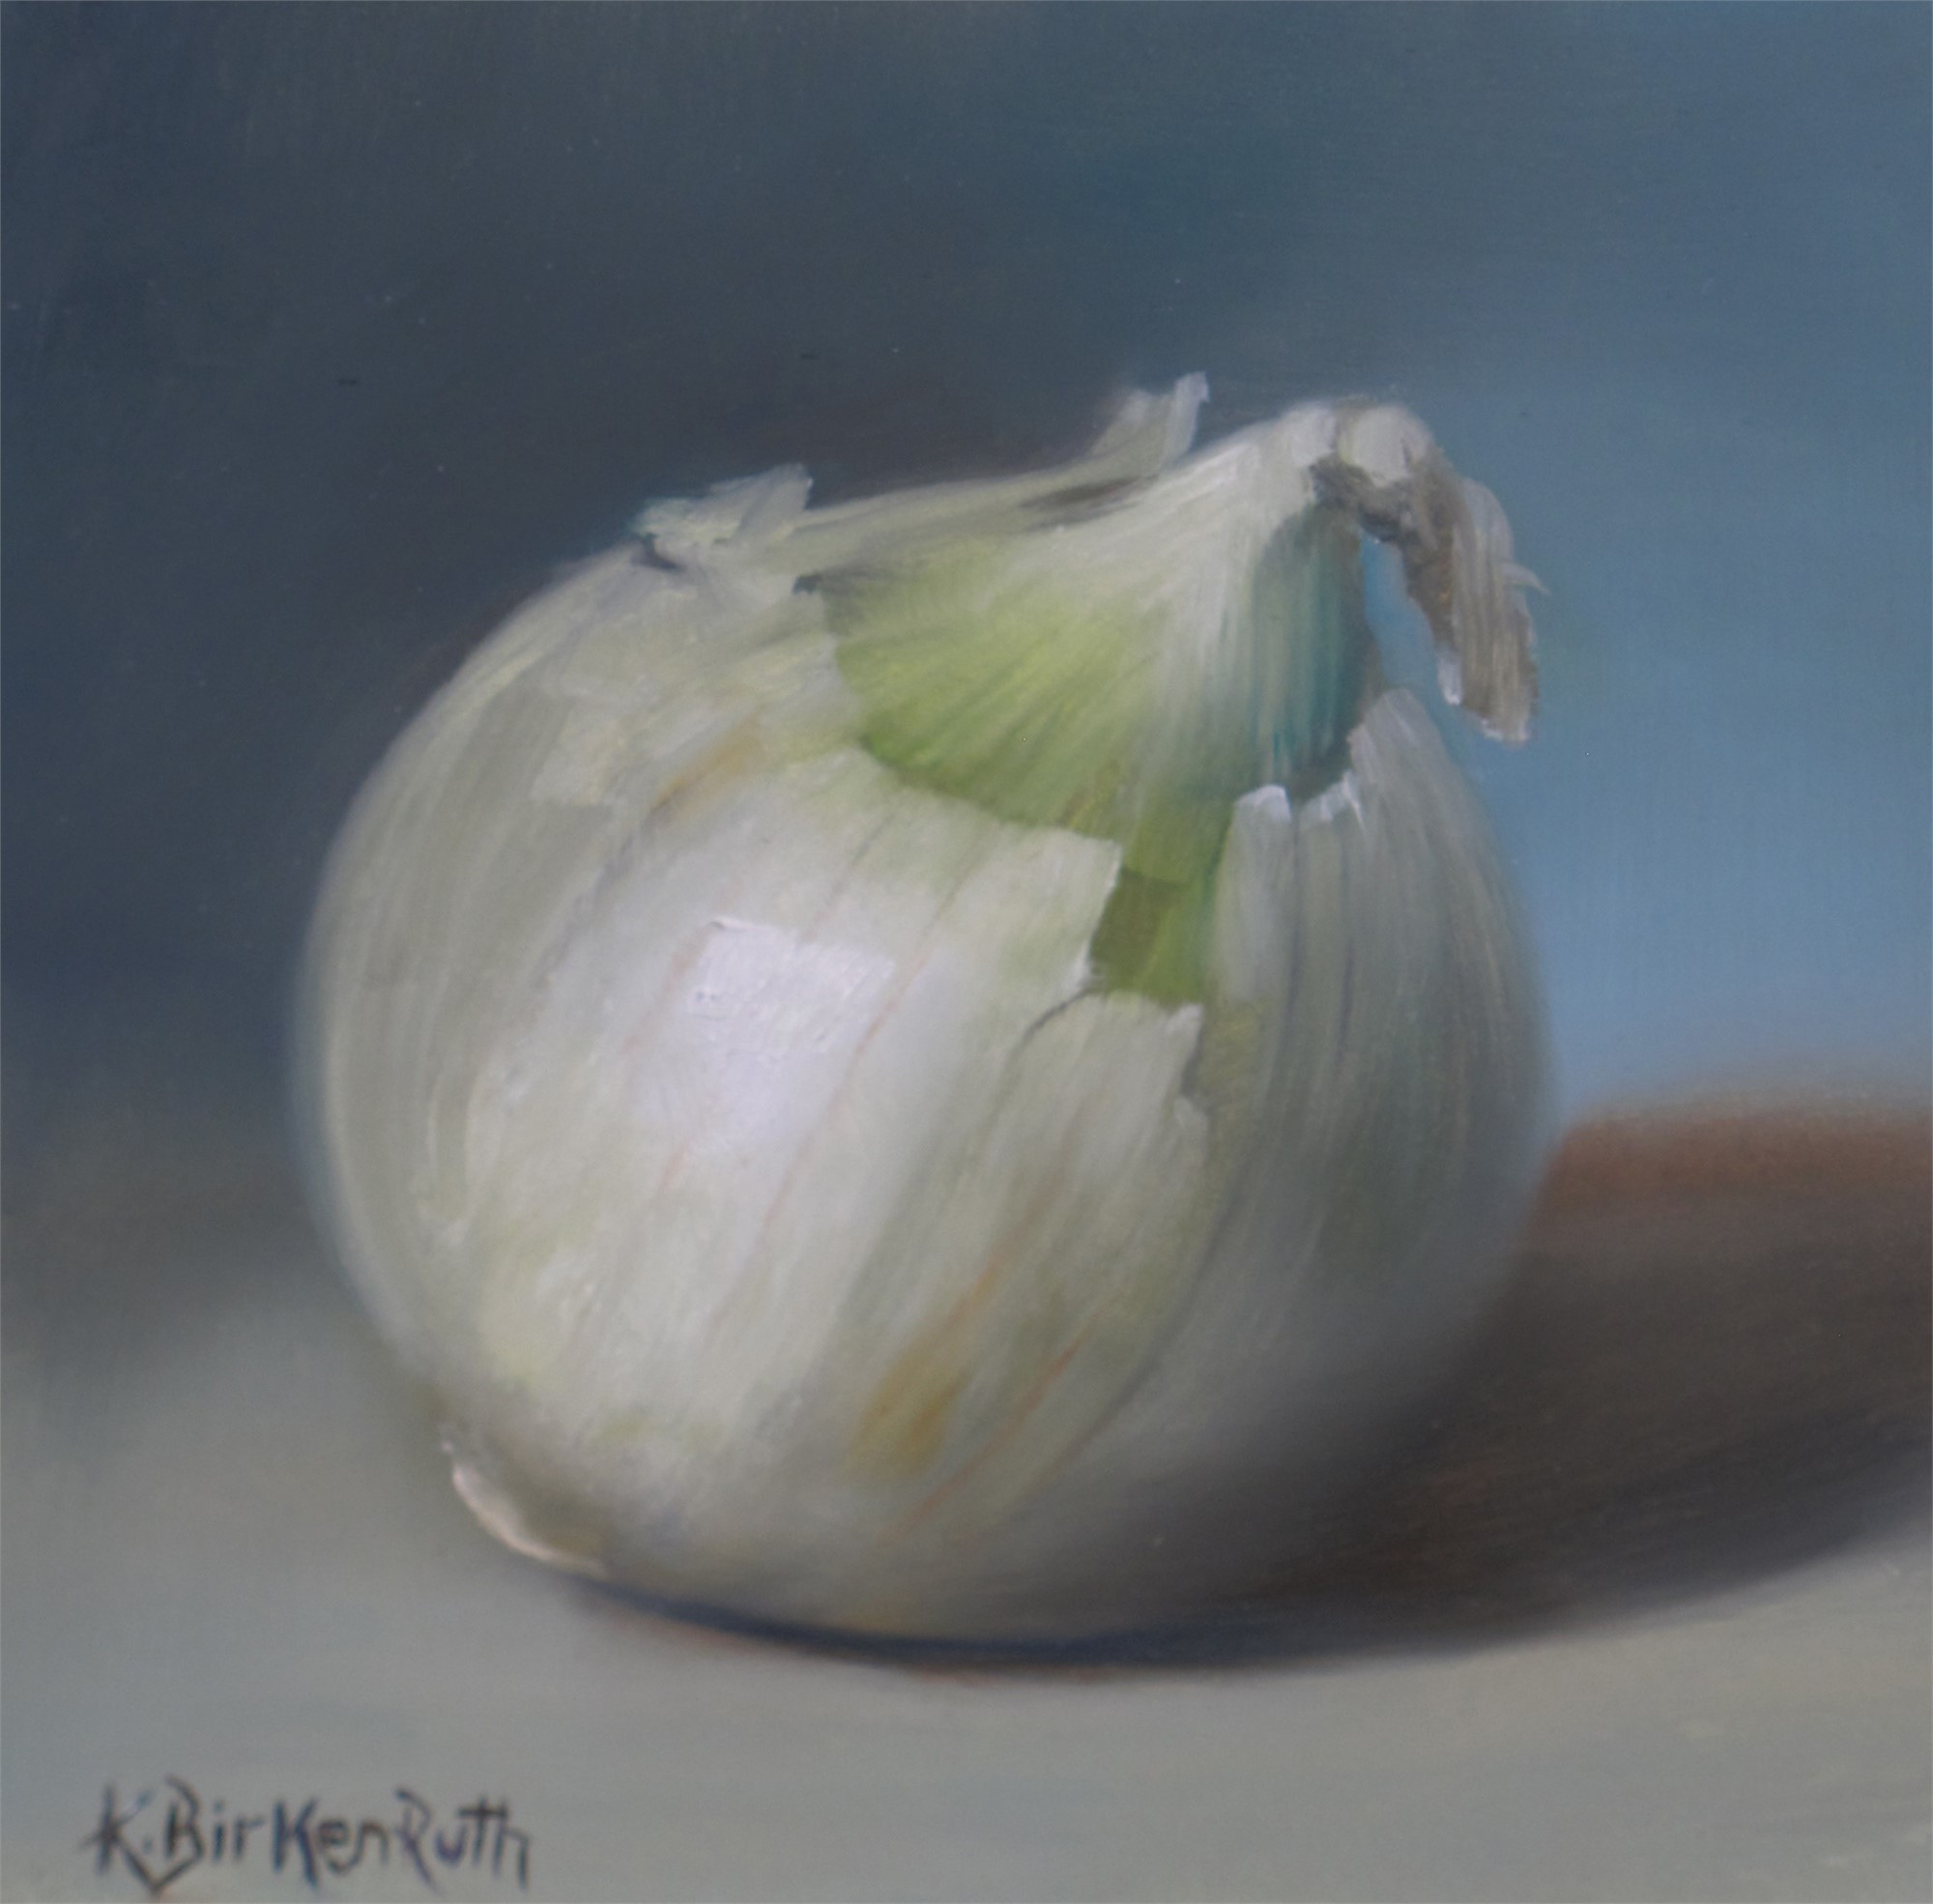 White Onion by Kelly Birkenruth